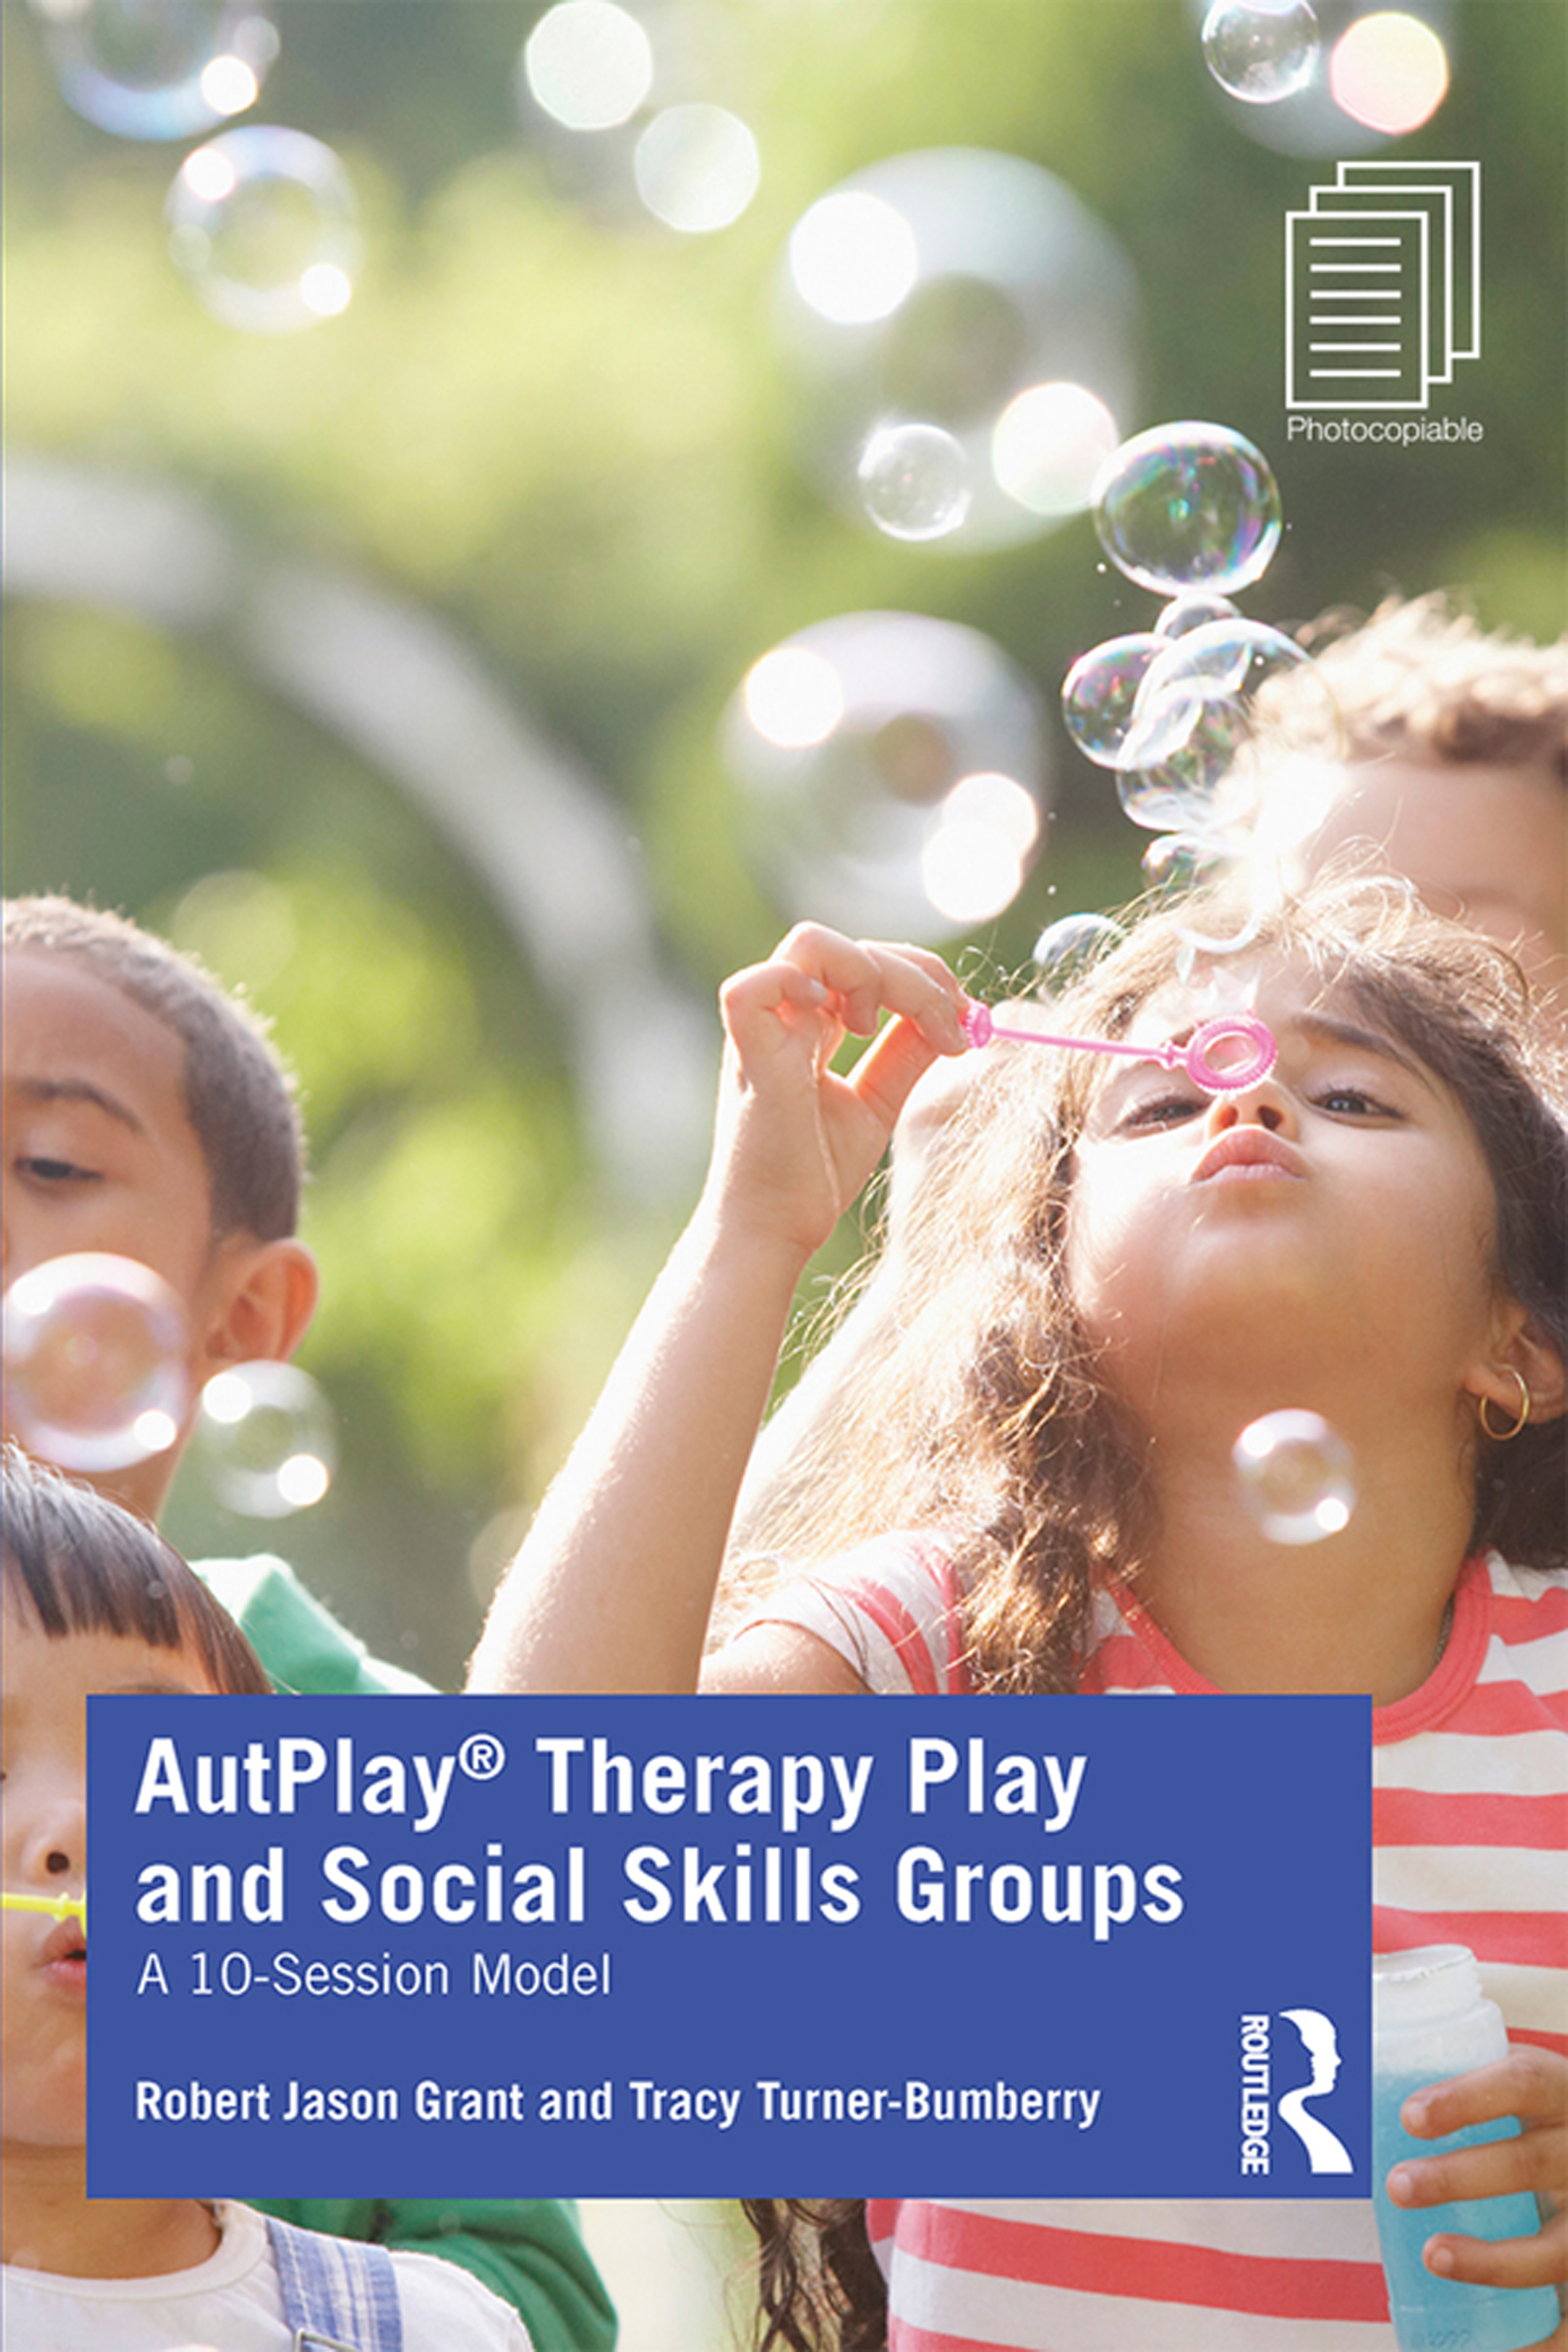 AutPlay® Therapy Social Skills Groups (10-Session Model)